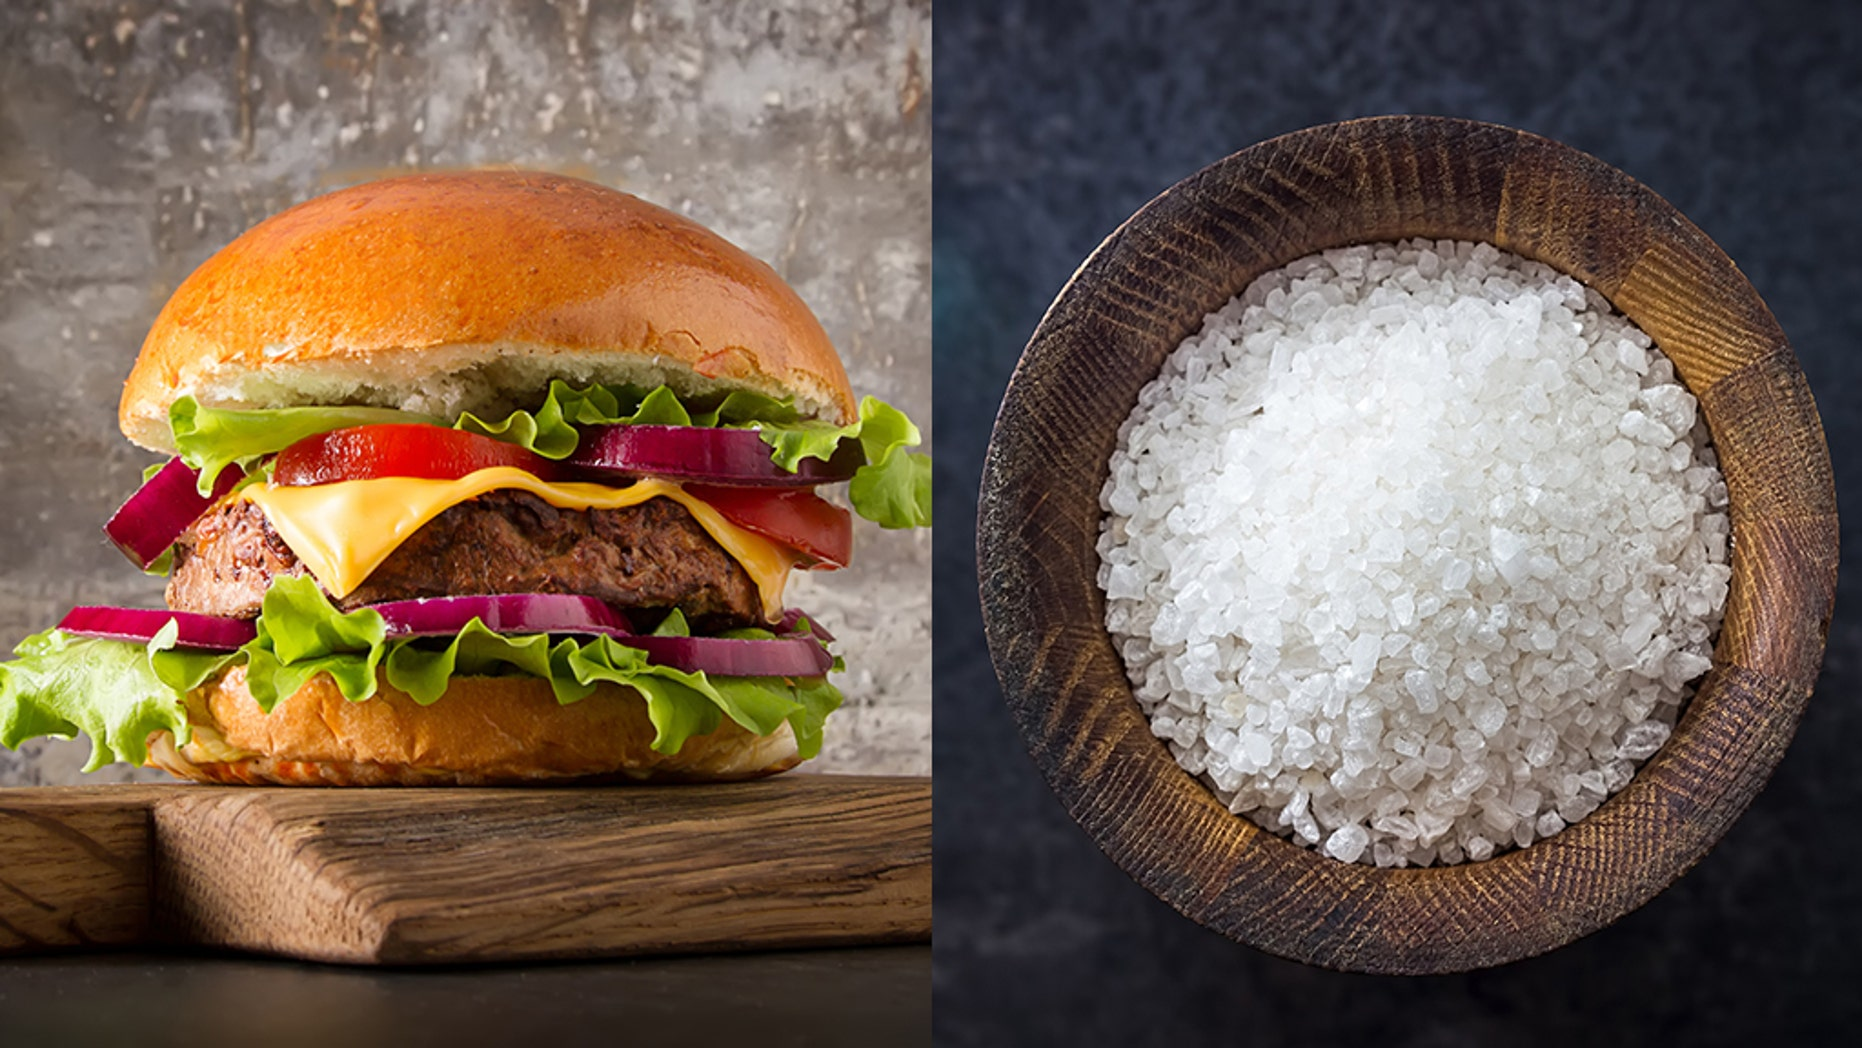 Of all the items surveyed, only three products were considered to be low in salt, containing 0.3g per 100g of salt or less.